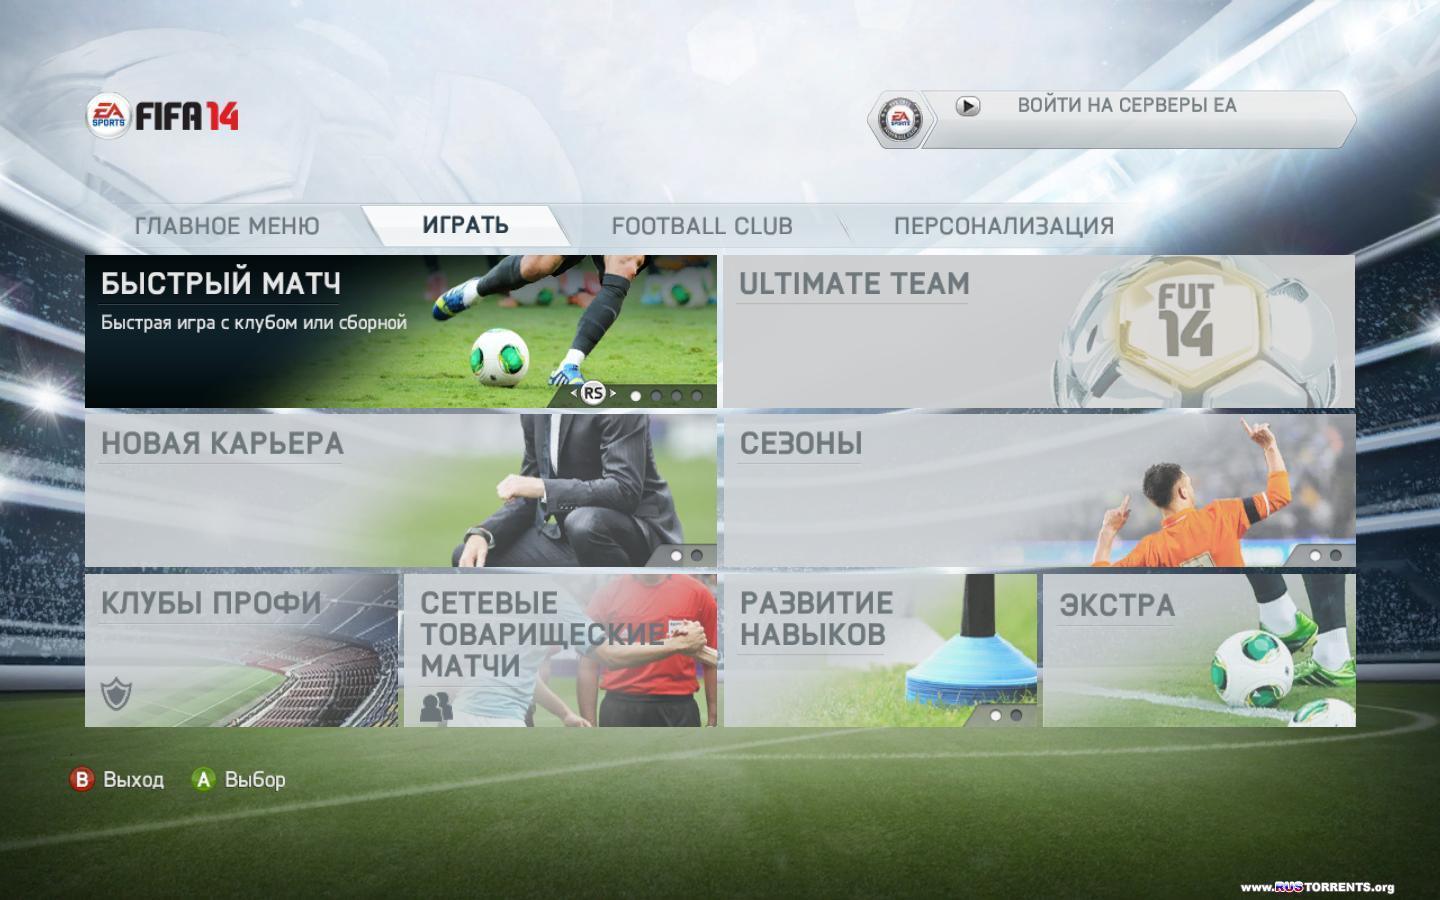 FIFA 14: Ultimate Edition [v 1.4.0.0] | PC | Repack от z10yded